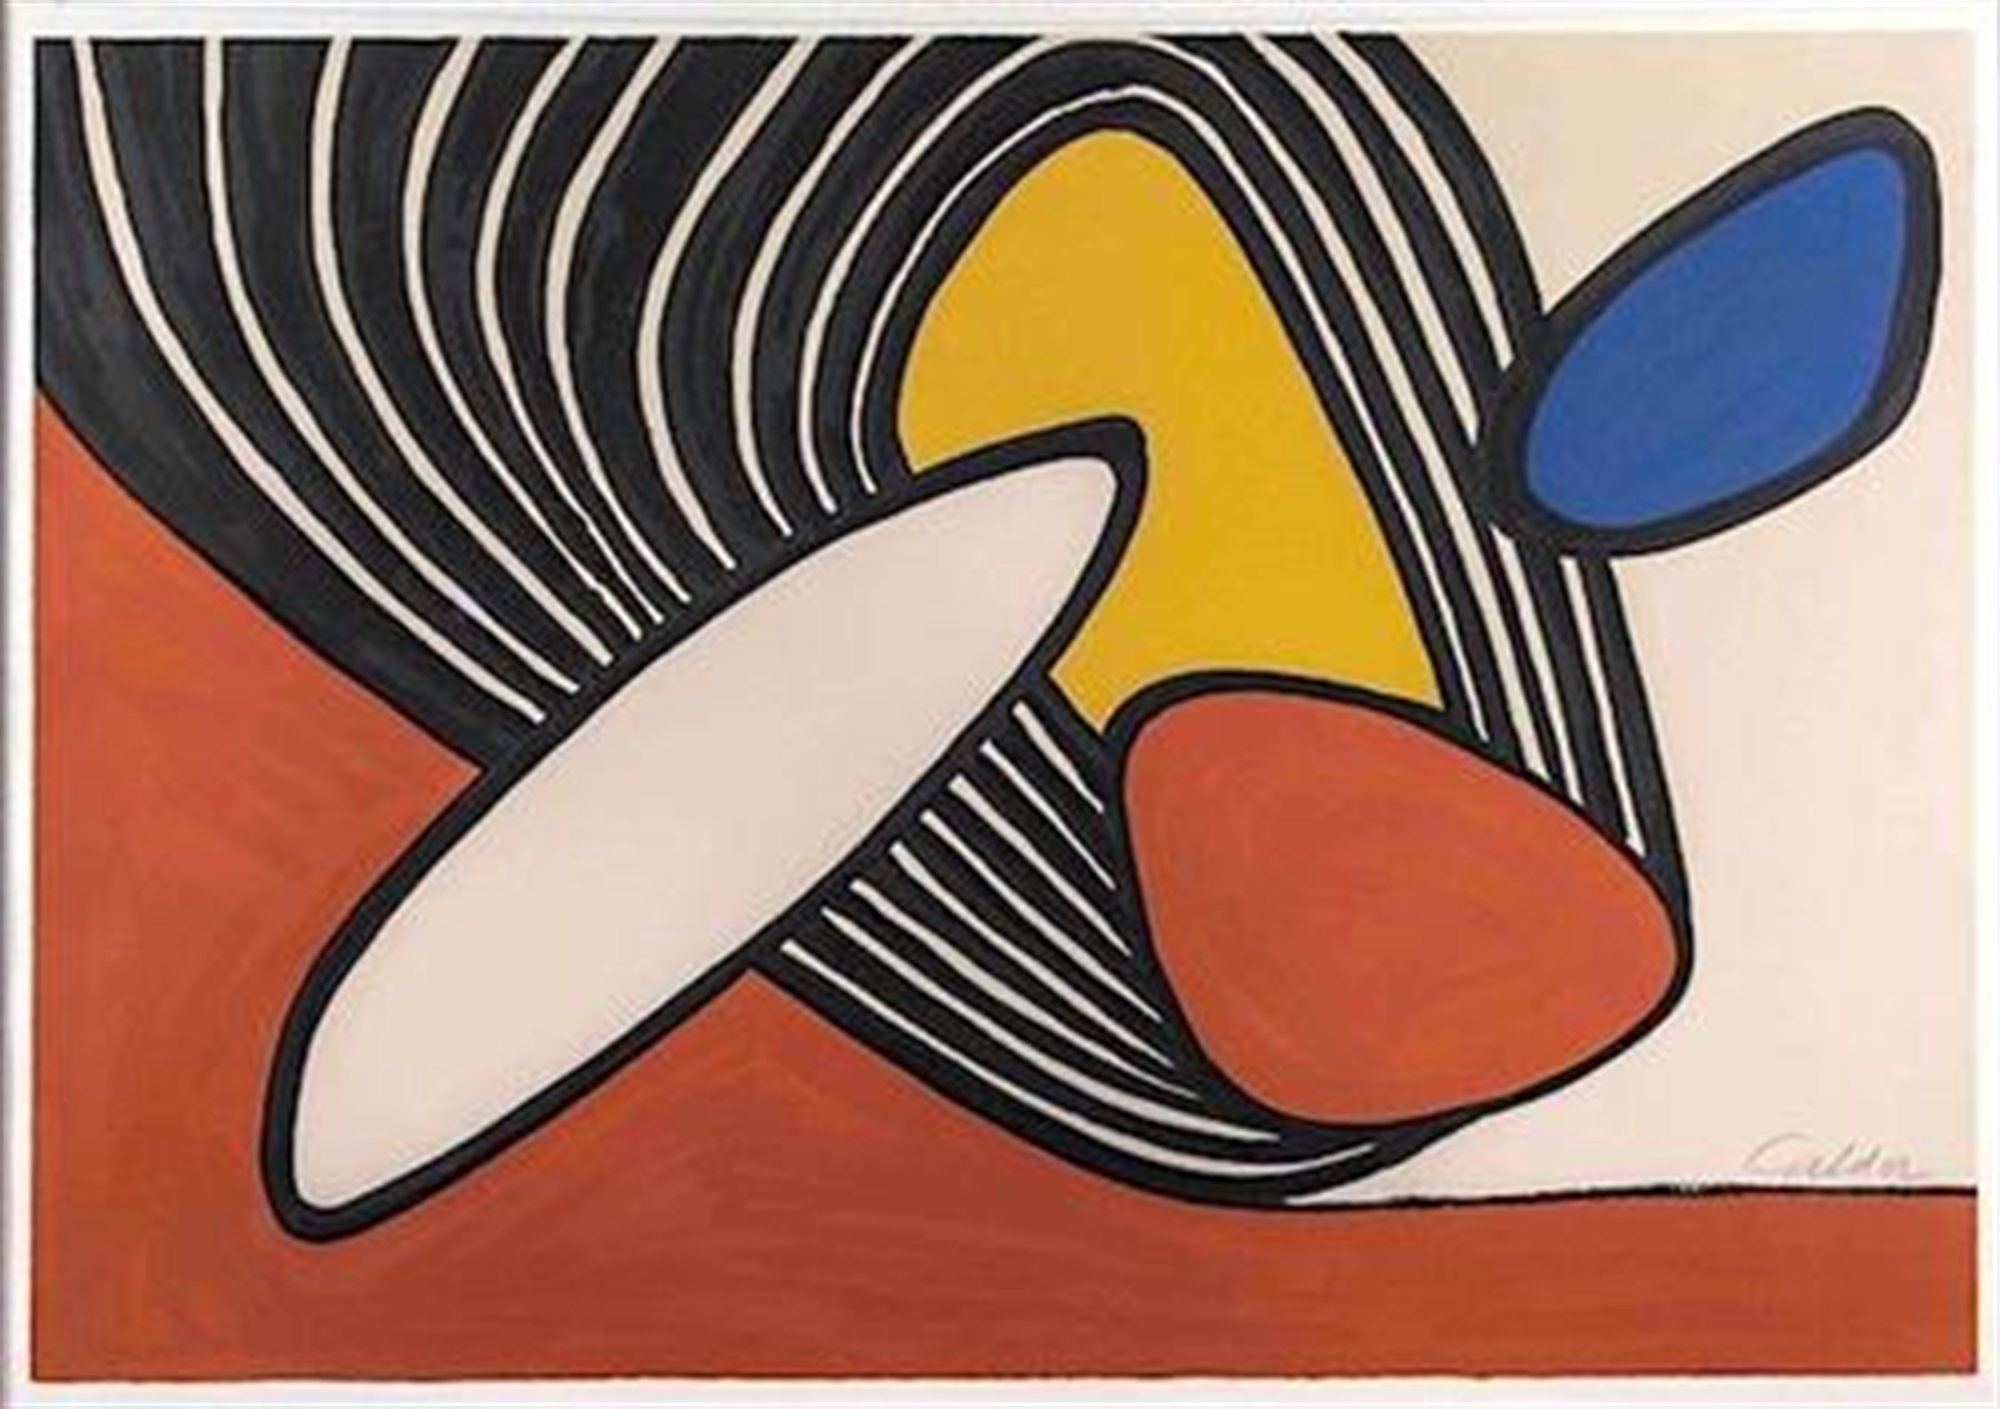 Composition with Discs and Black Spiral by Alexander Calder